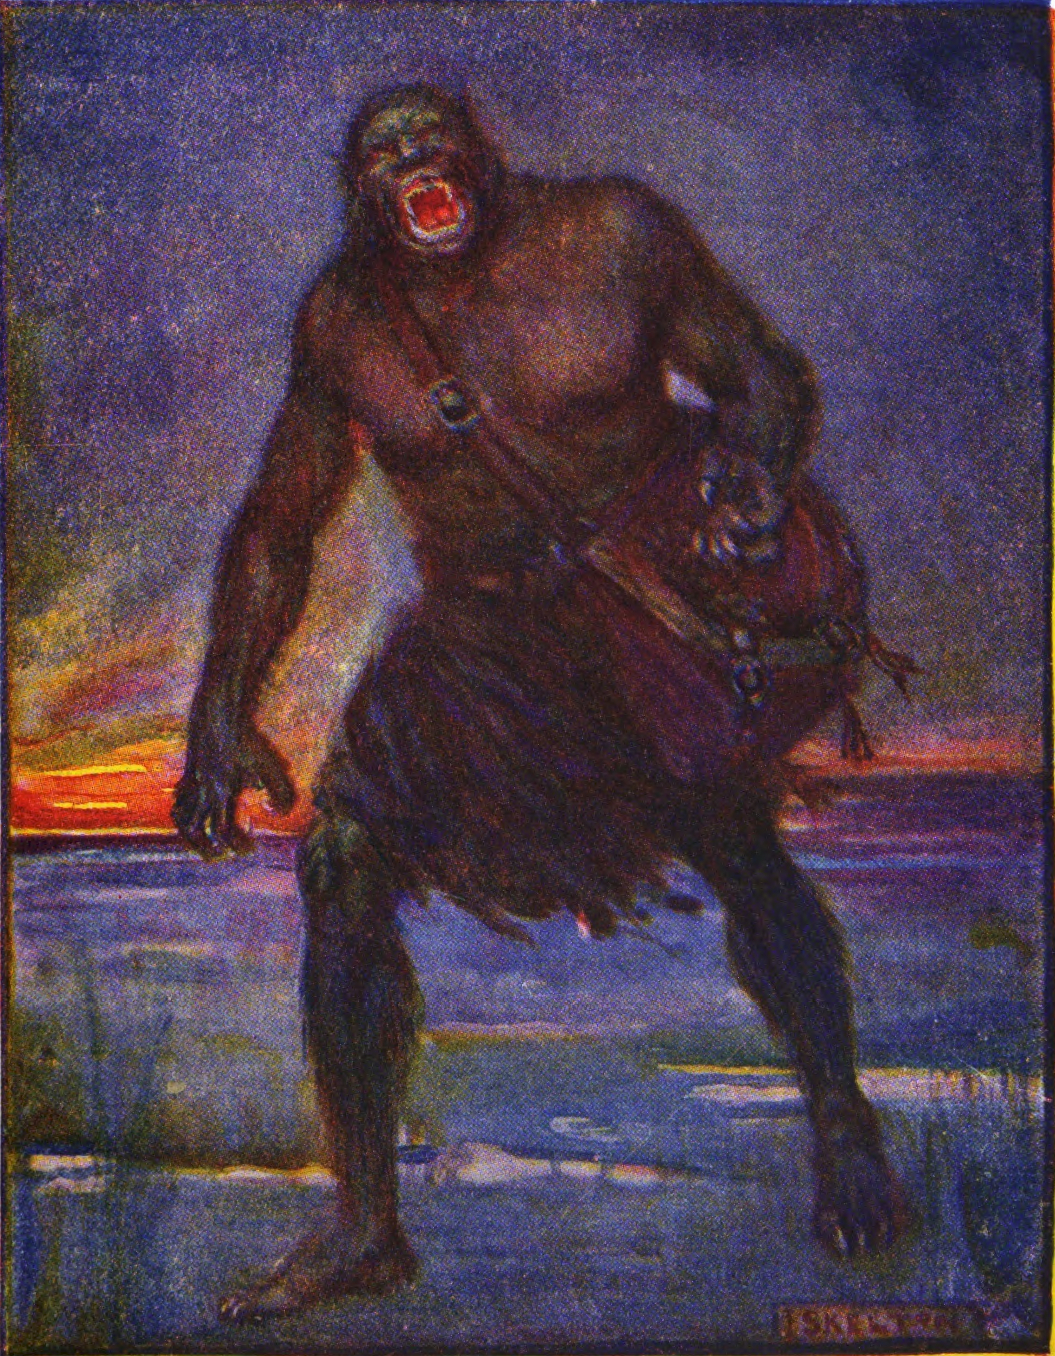 grendel in american society writework an illustration of grendel by j r skelton from stories of beowulf grendel is described as